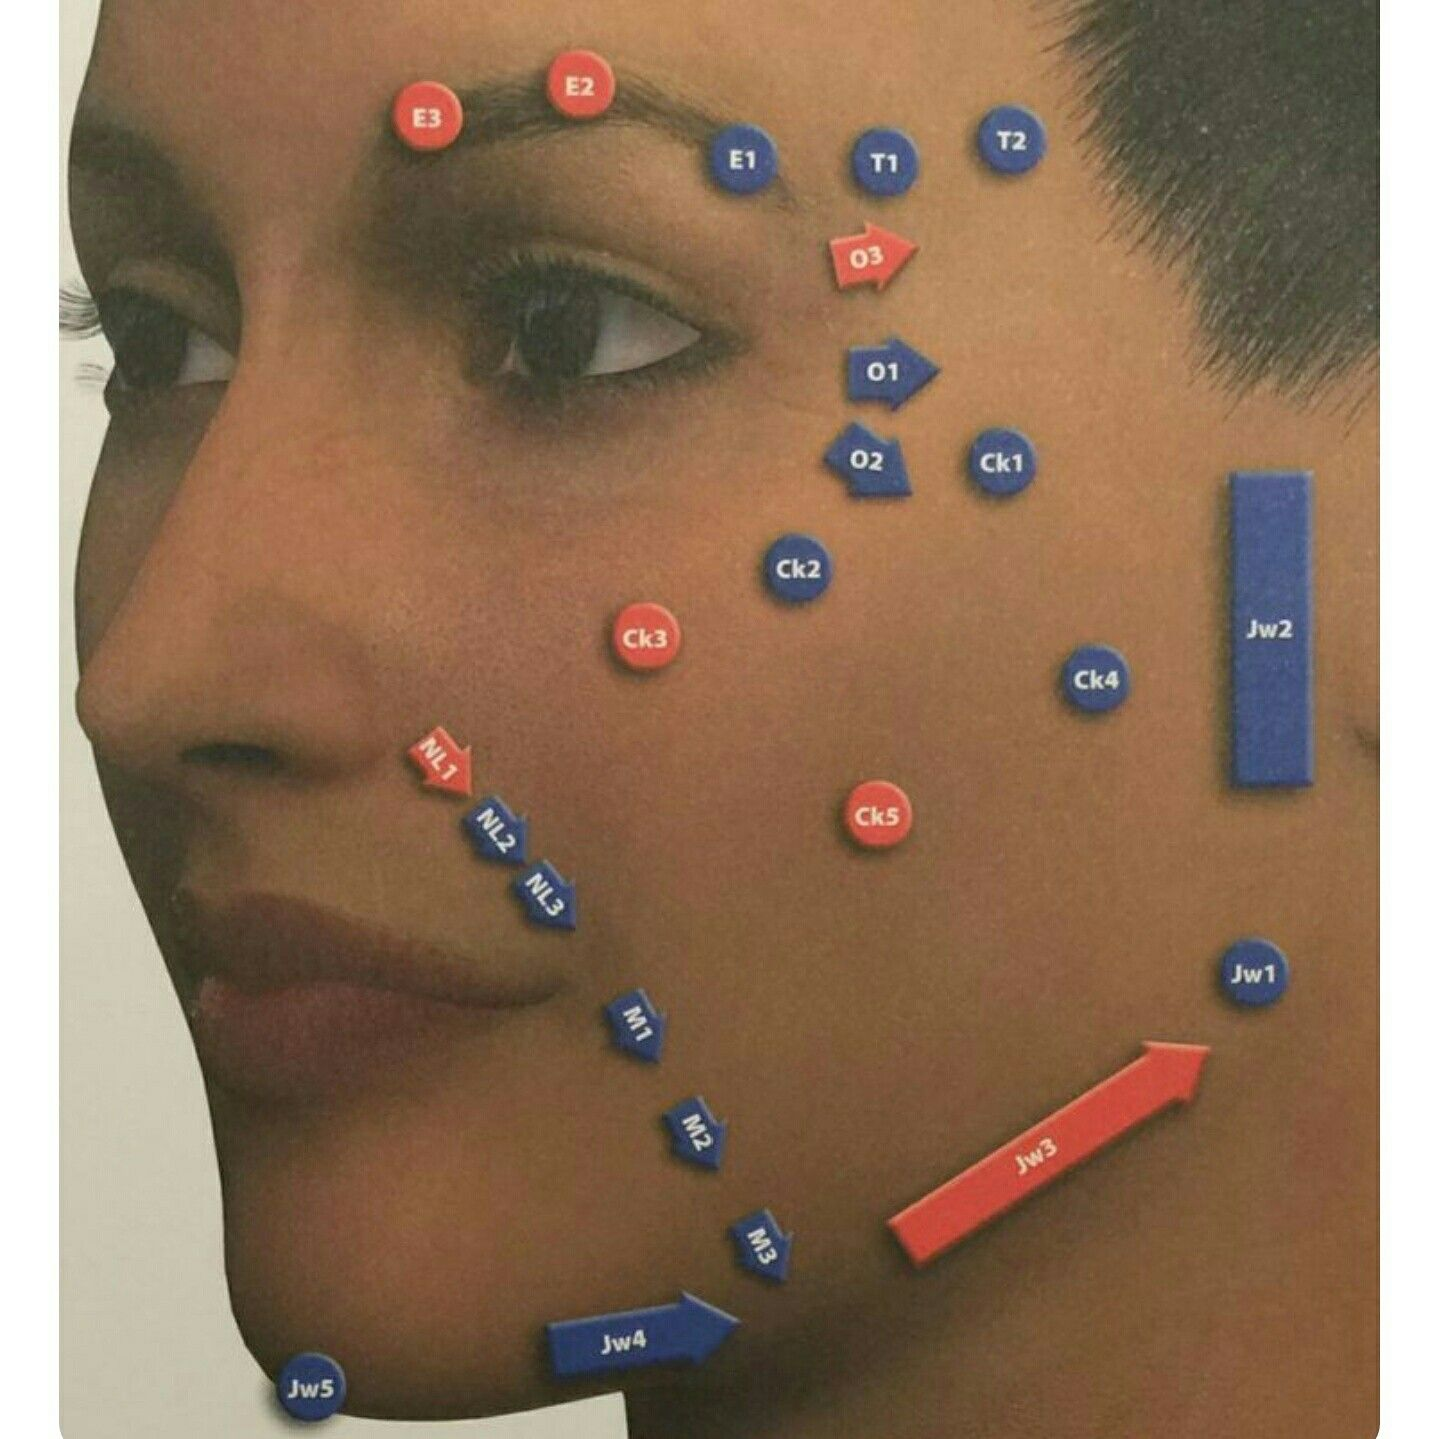 Pin by Cheryl Langdon on Lip Shapes (With images) Facial